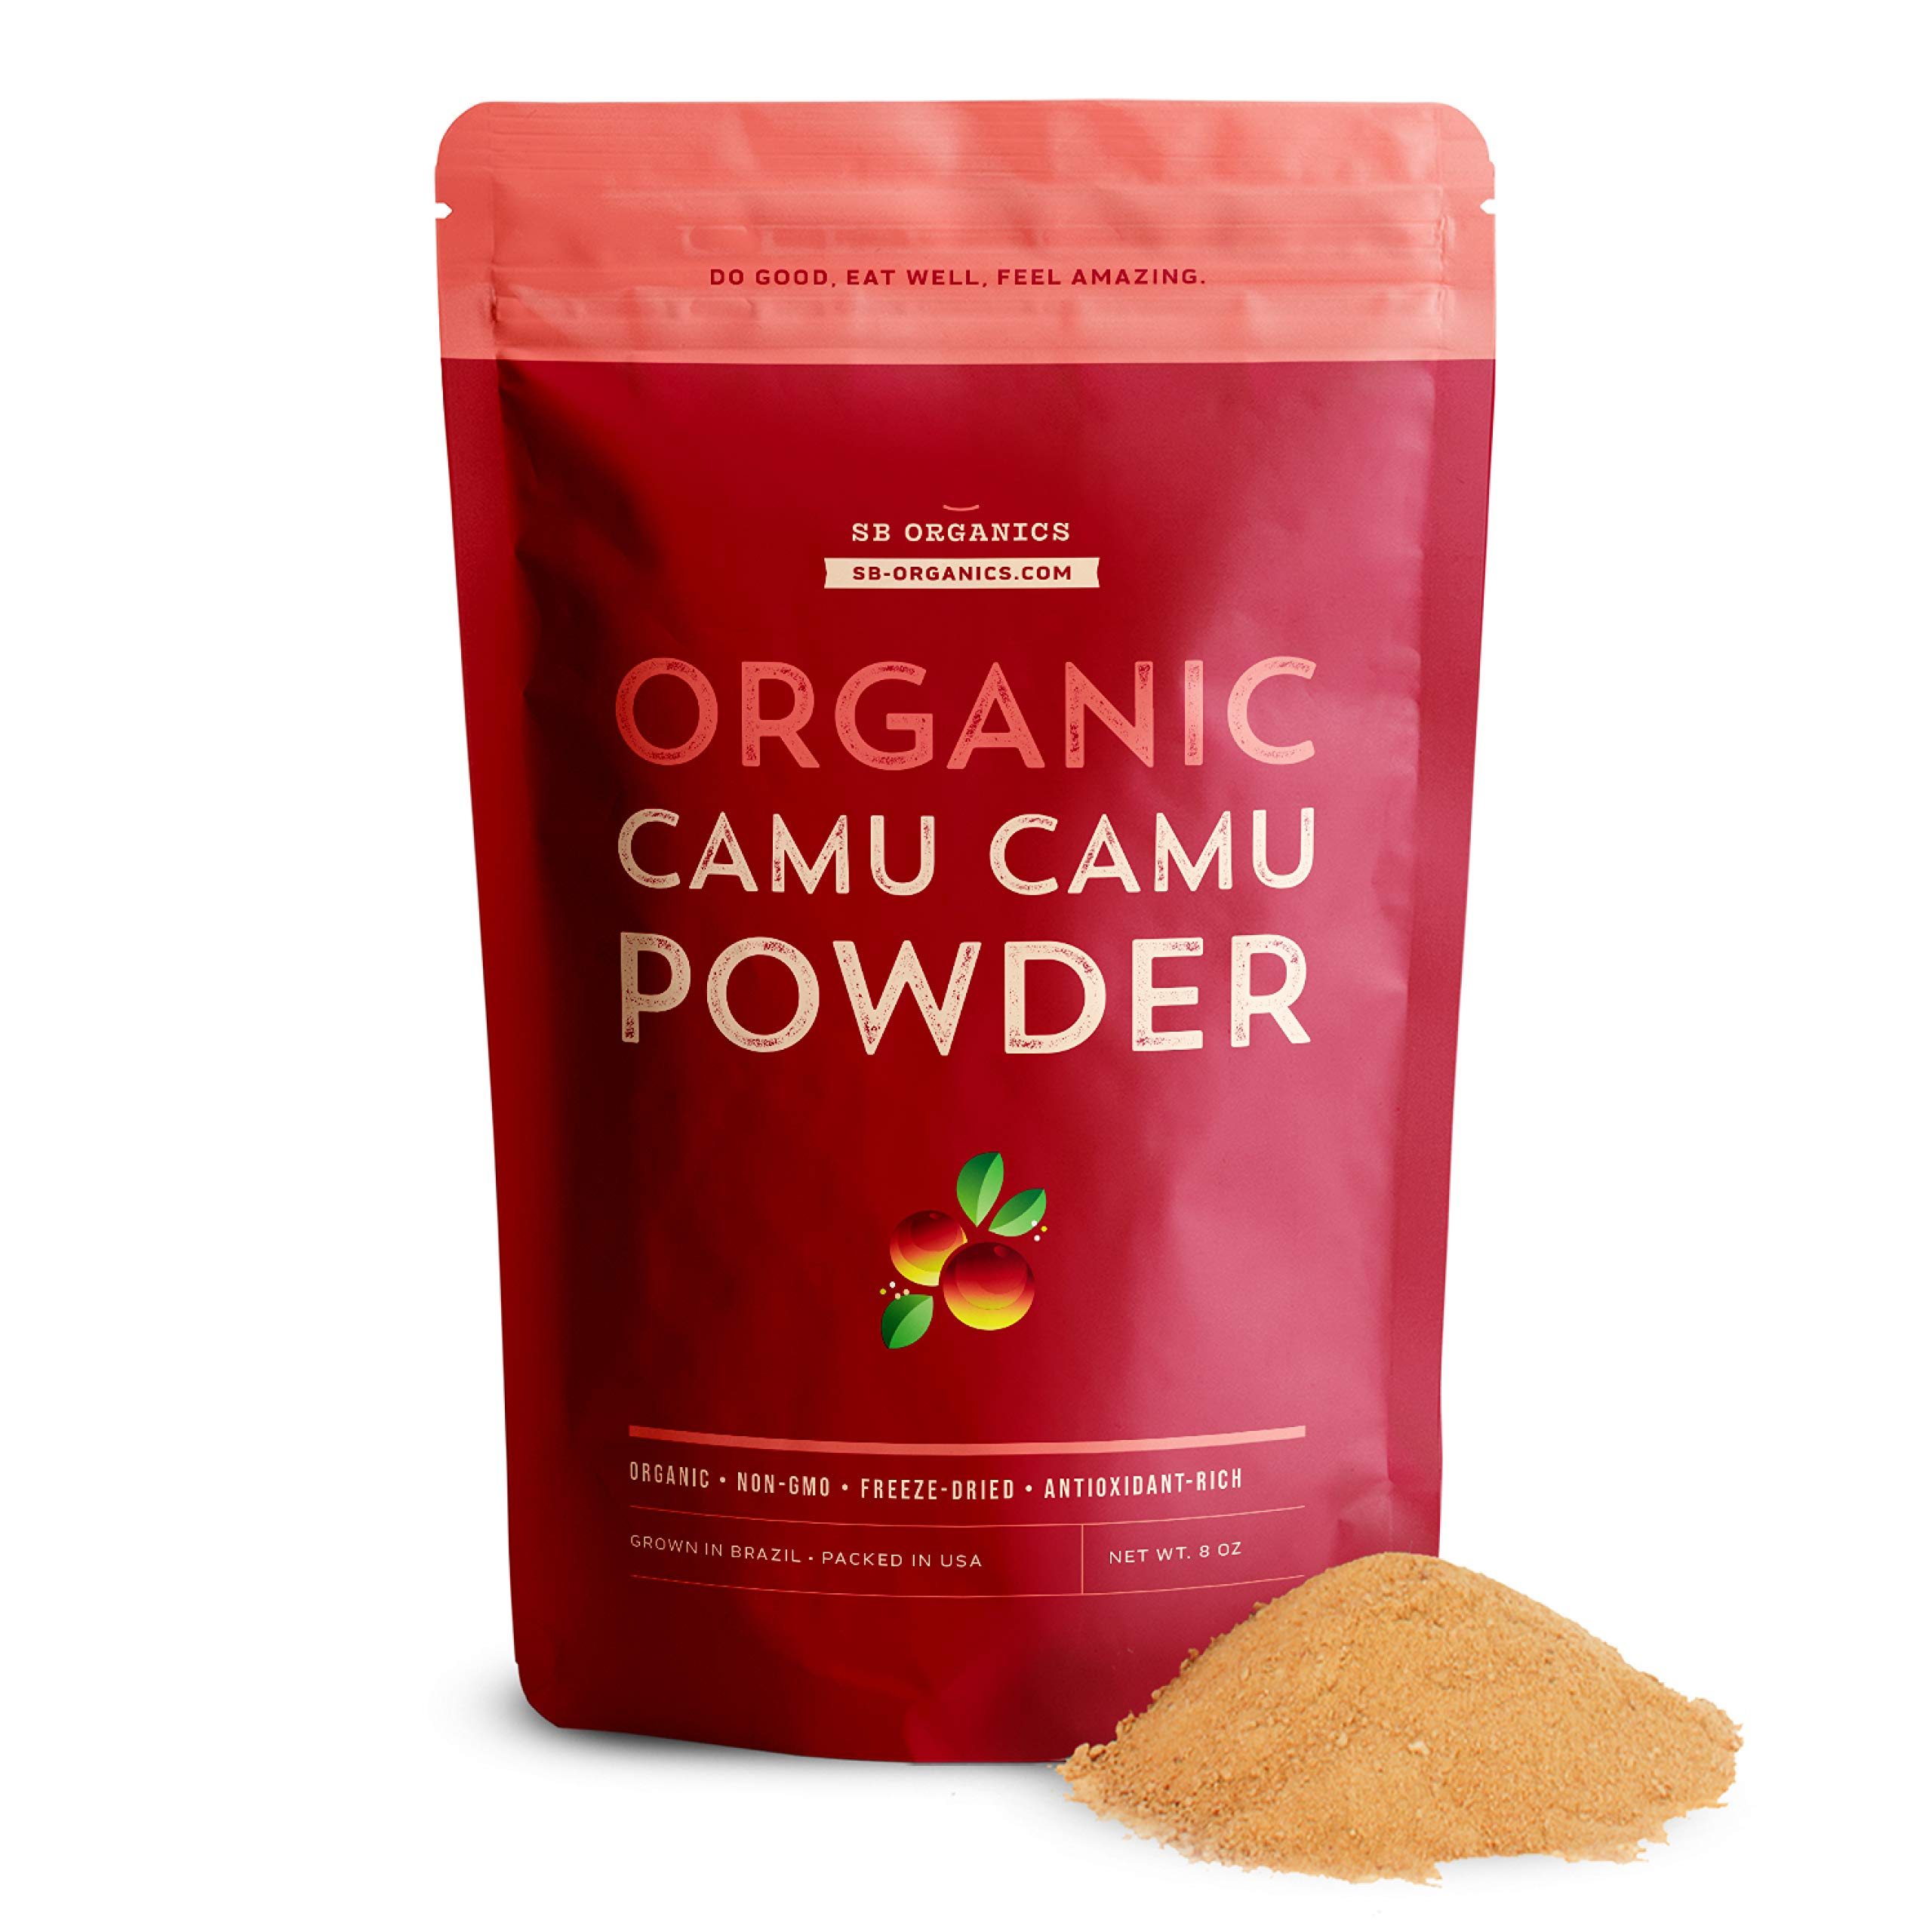 SB Organics Camu Camu Powder Organic - 8 oz Bag of Non-GMO Kosher Freeze-Dried Camu Camu Berry Pulp Powder from Brazil - Naturally Rich in Vitamin C and Antioxidants